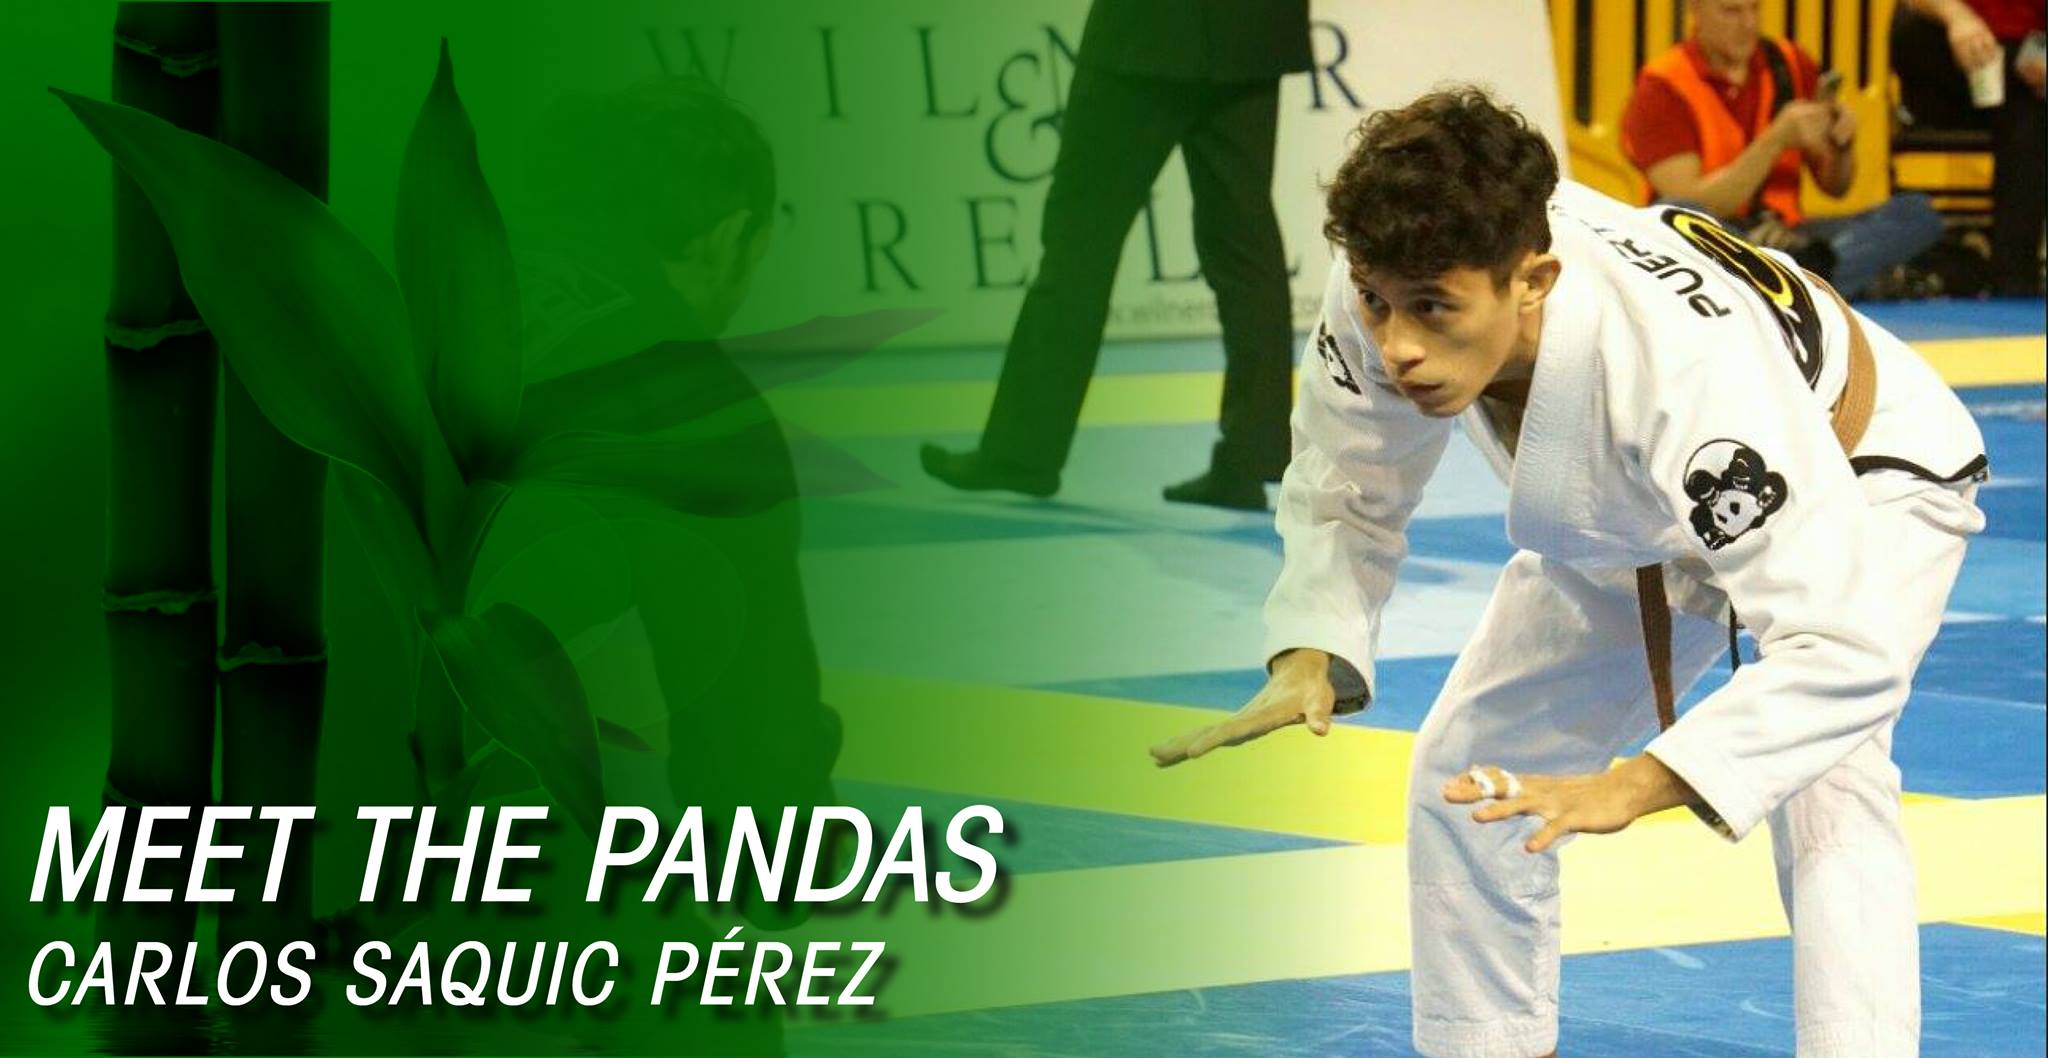 Meet the Pandas: From the Pool to the Mat - Carlos Saquic